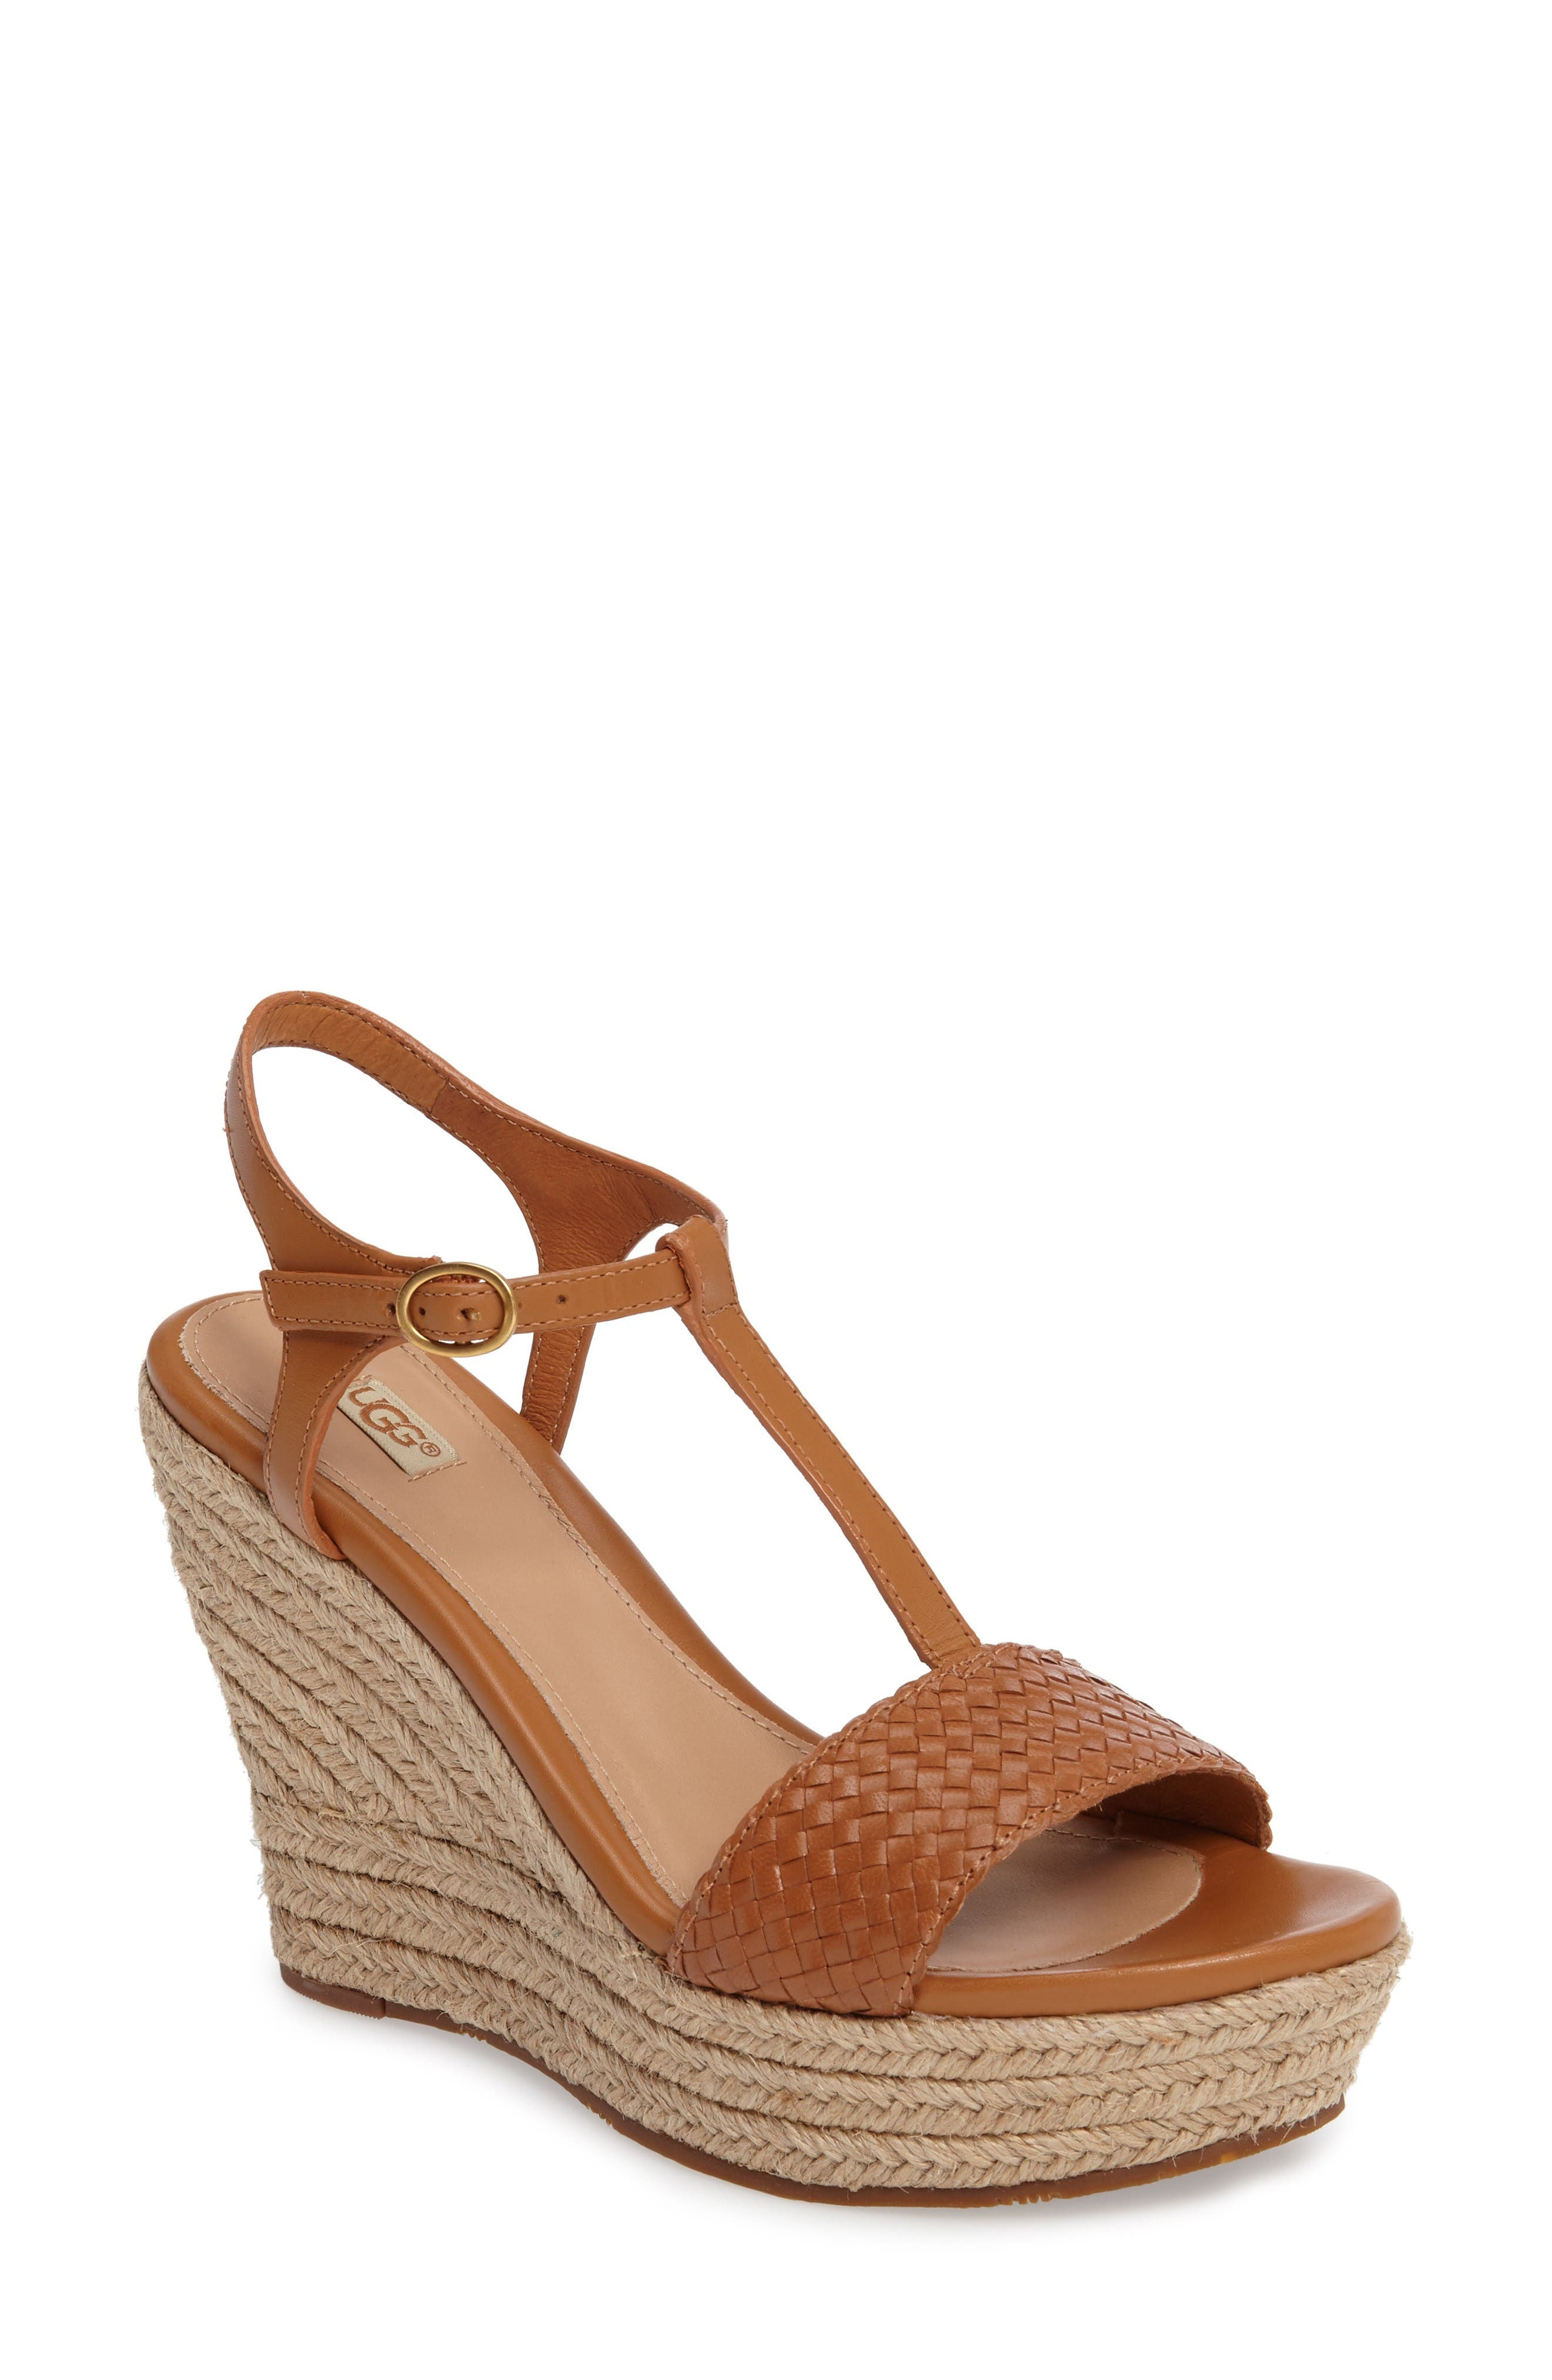 Main Image - UGG® Fitchie II Espadrille Wedge Sandal (Women)